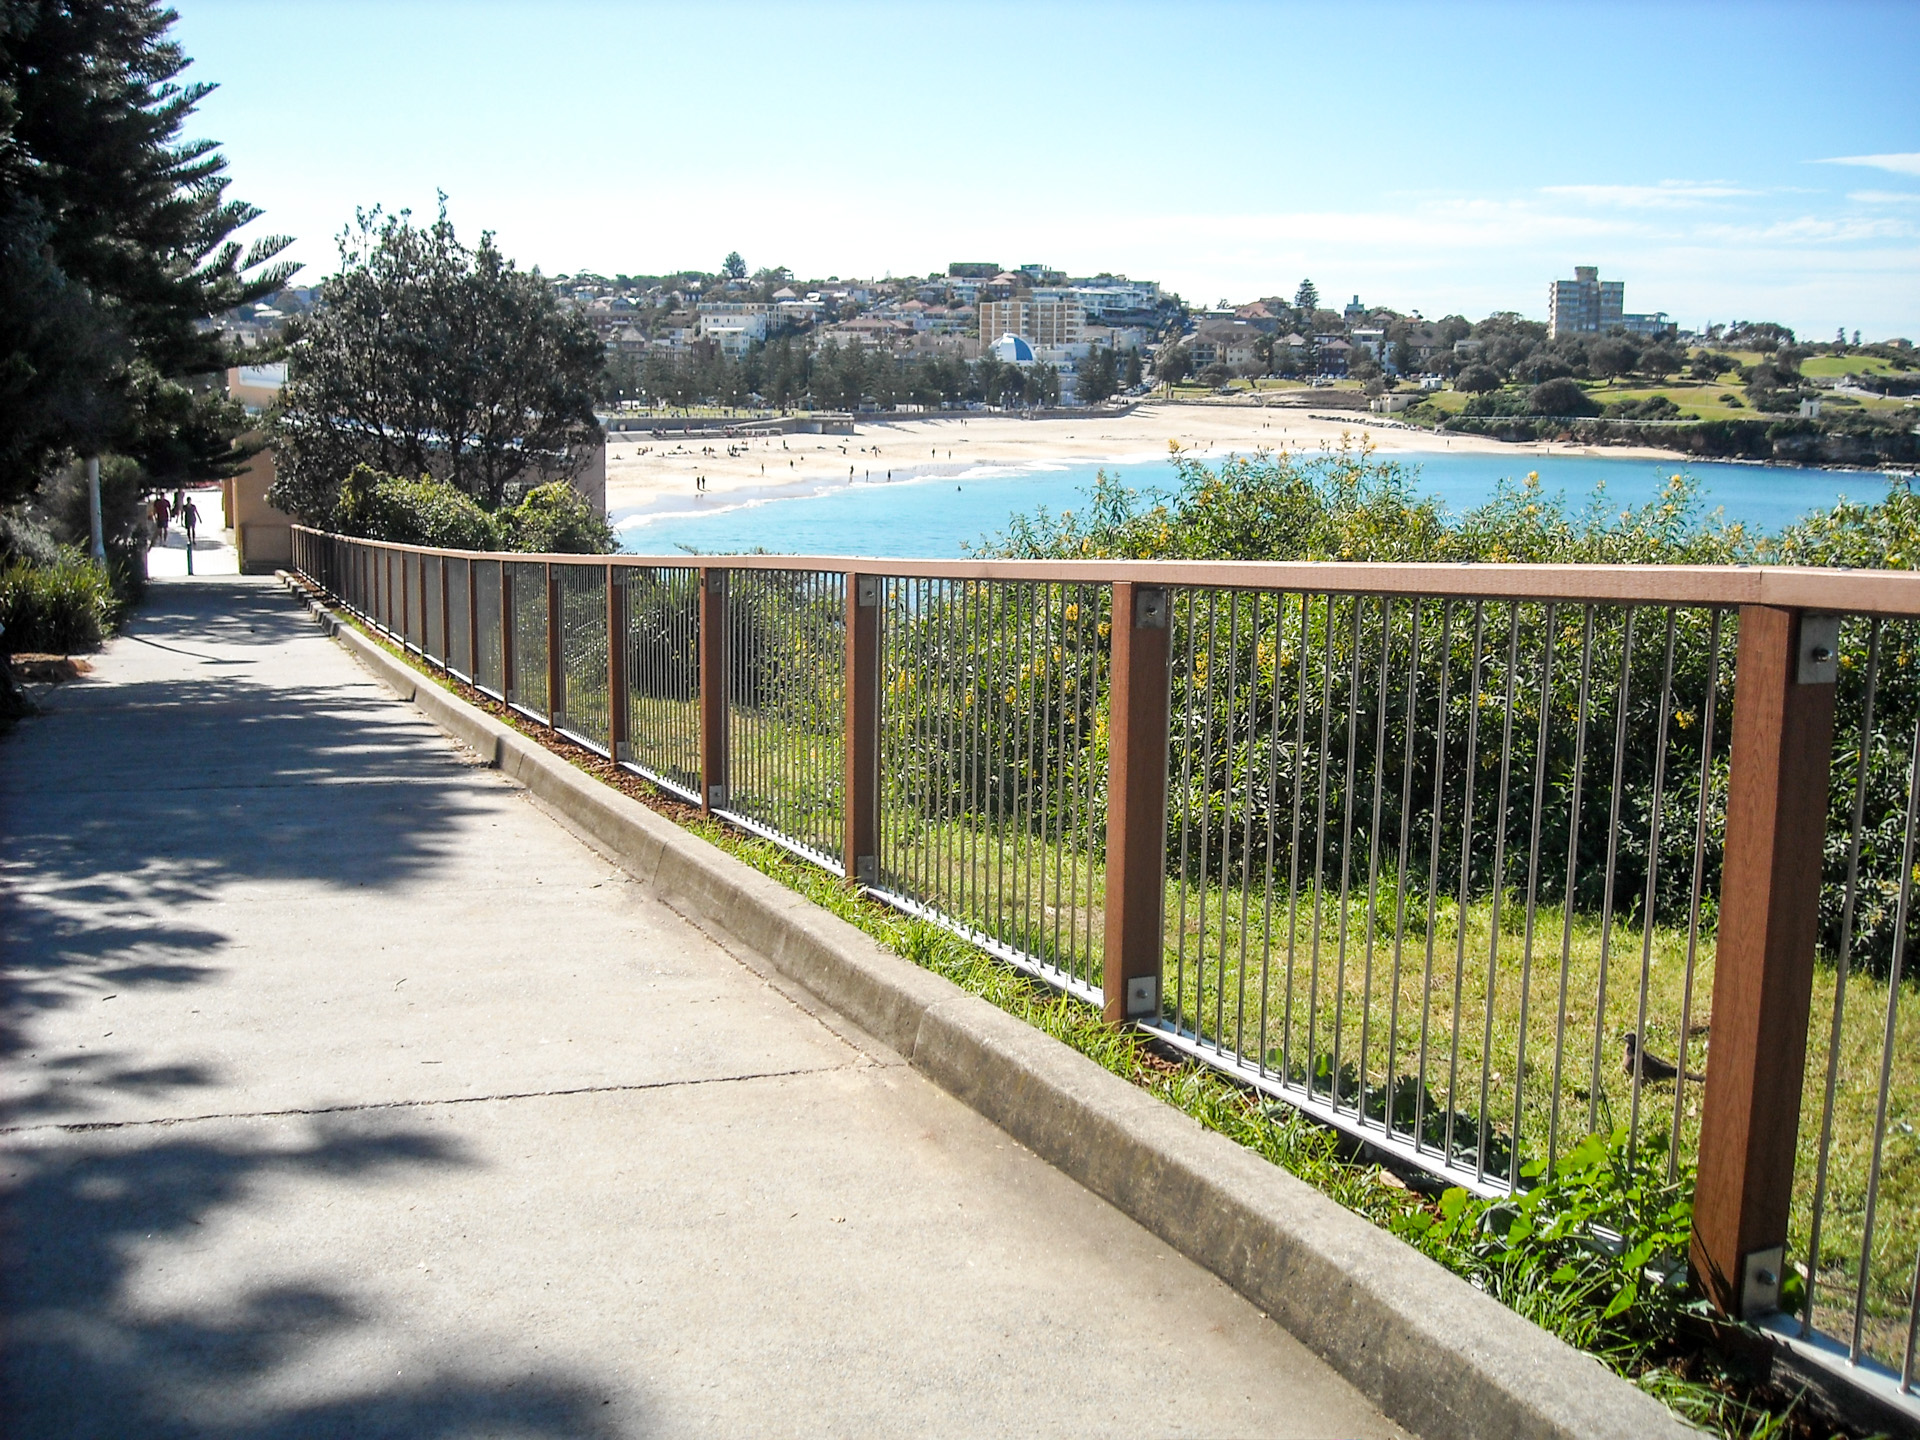 RANDWICK COUNCIL - Coogee Beach Coastal Fence